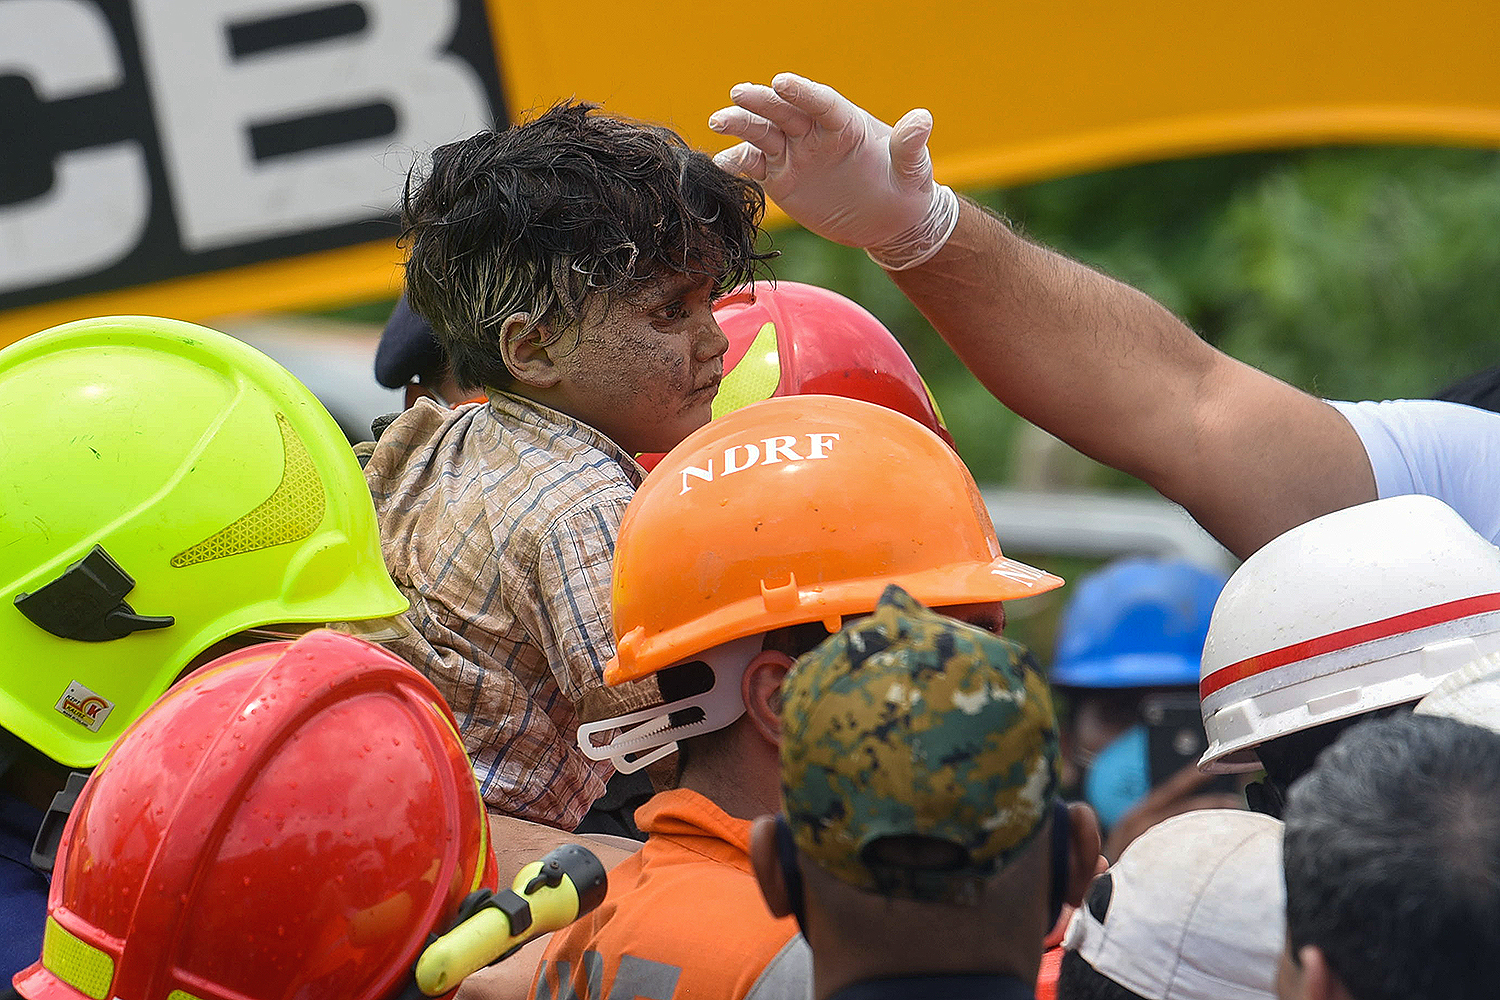 Rescue workers carry a 4-year-old boy who was pulled from the rubble of a collapsed five-story apartment building in Mahad, India, on Aug. 25. MANOEJ PAATEEL/AFP via Getty Images